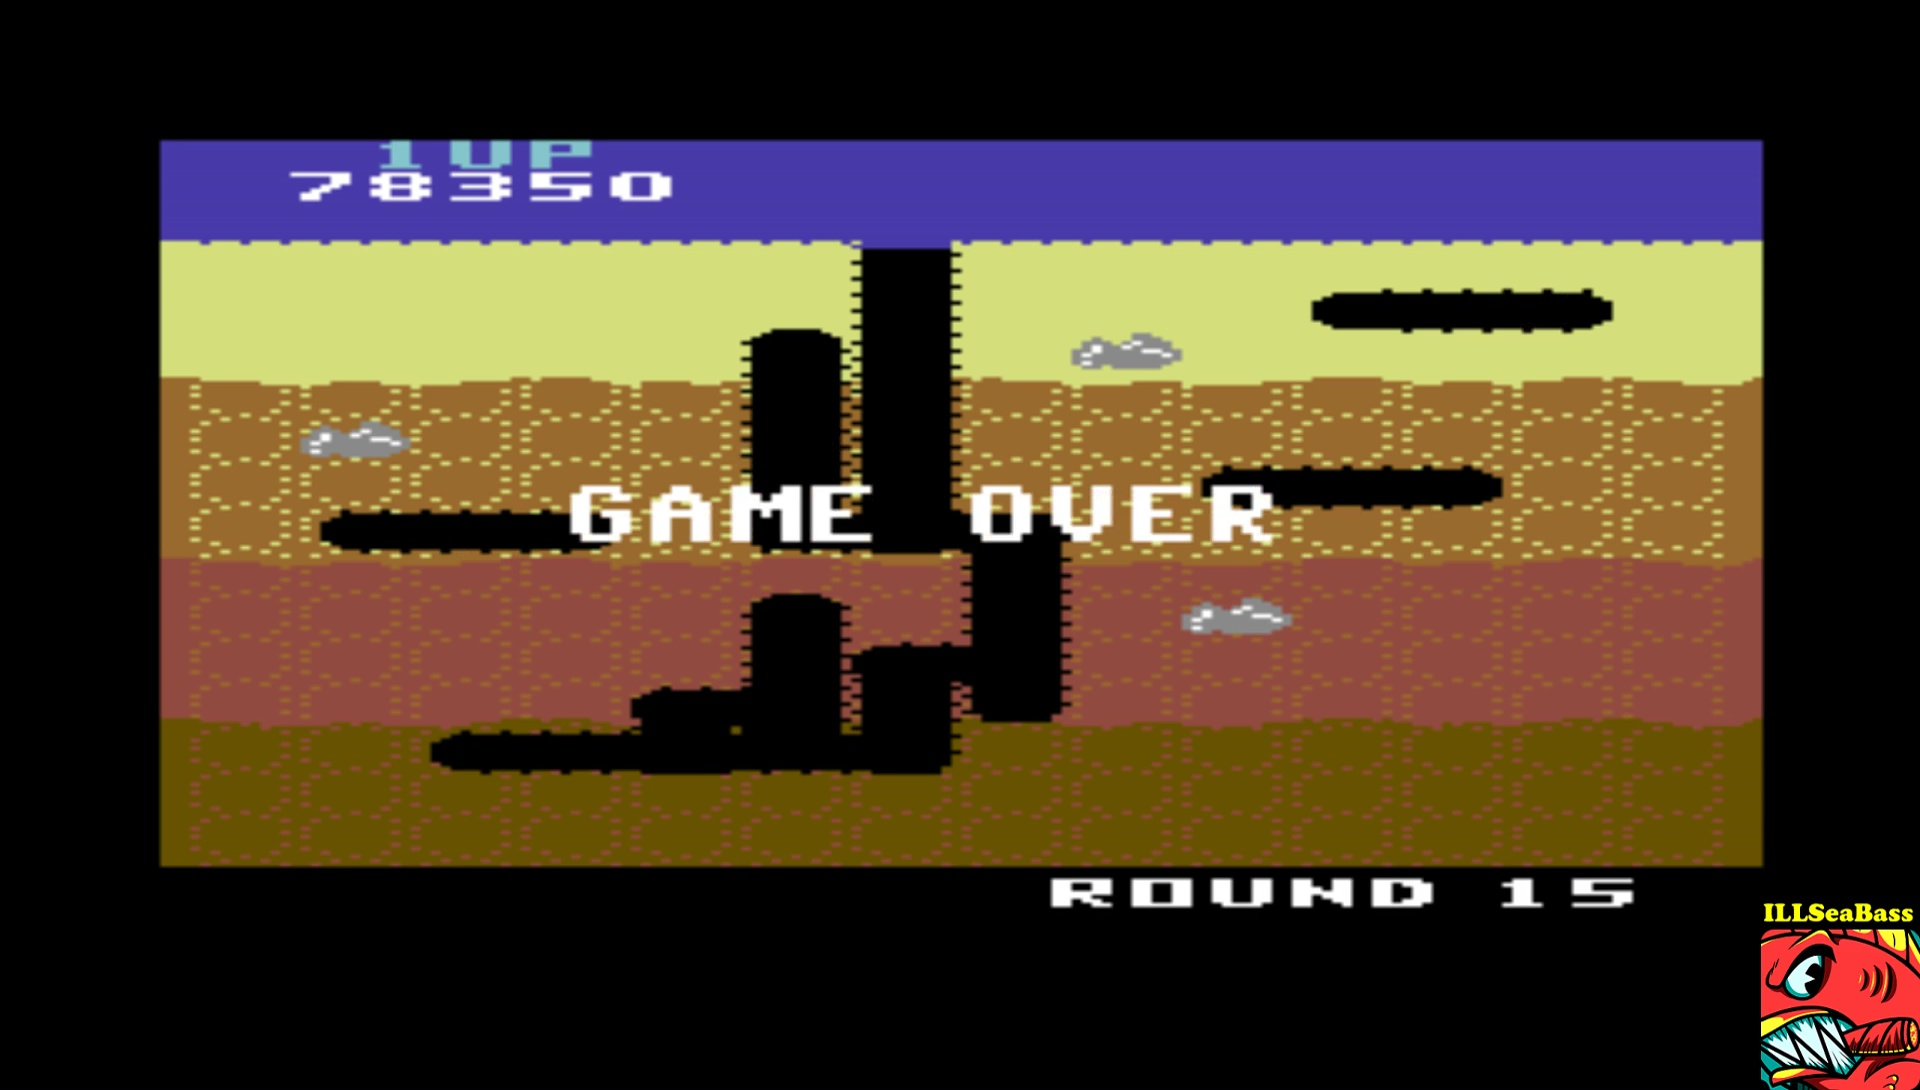 ILLSeaBass: Dig Dug (Commodore 64 Emulated) 78,350 points on 2017-03-17 00:21:16